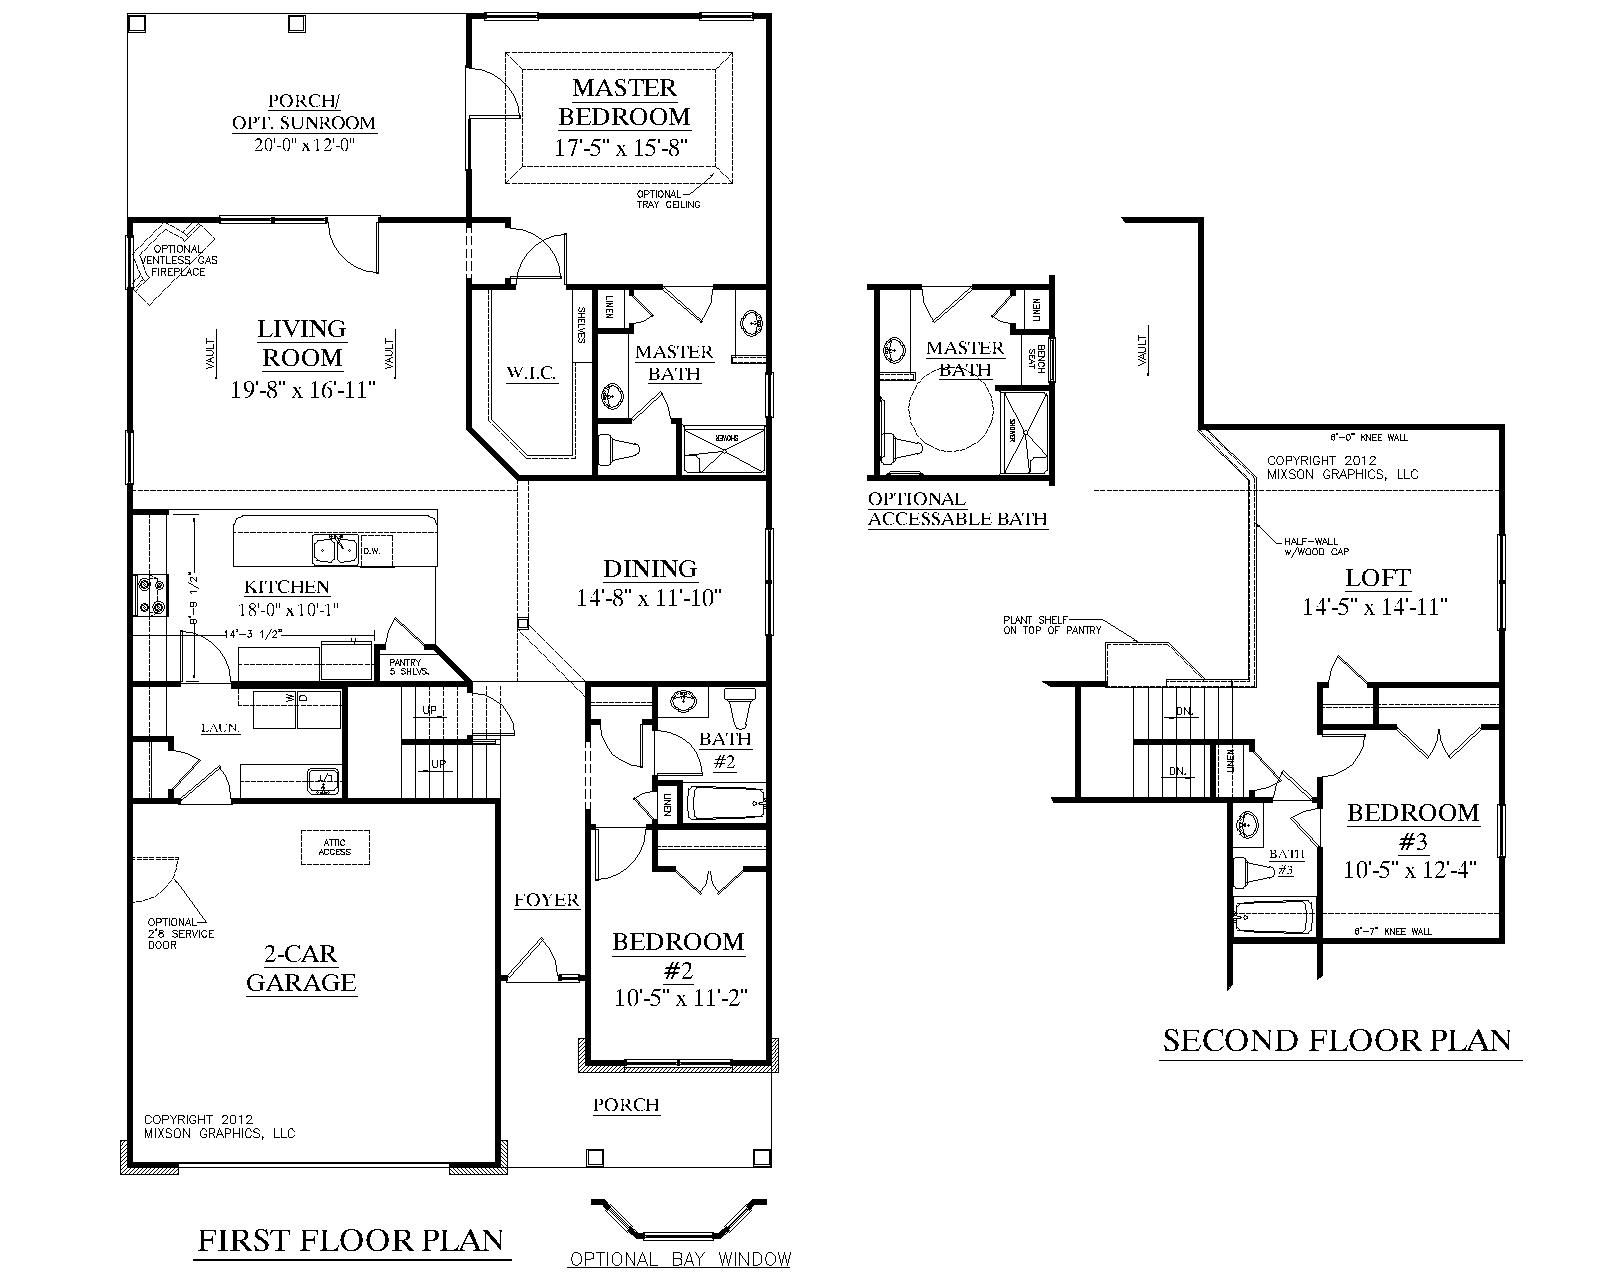 House plan 2224 kingstree floor plan traditional 1 1 2 for 1 1 2 story home plans